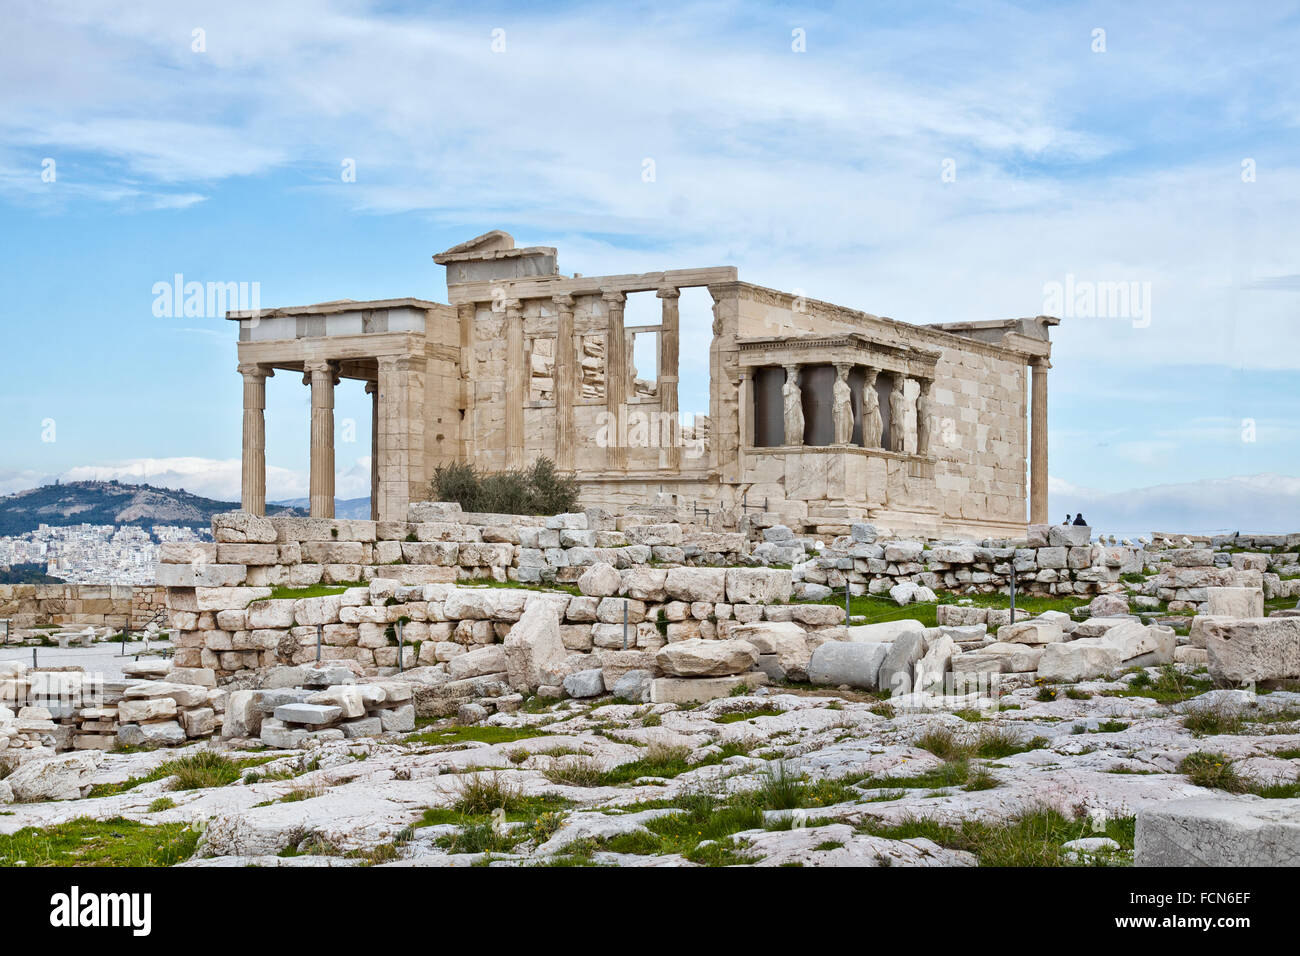 The Erechtheion is an ancient Greek temple on the north side of the Acropolis of Athens in Greece. - Stock Image